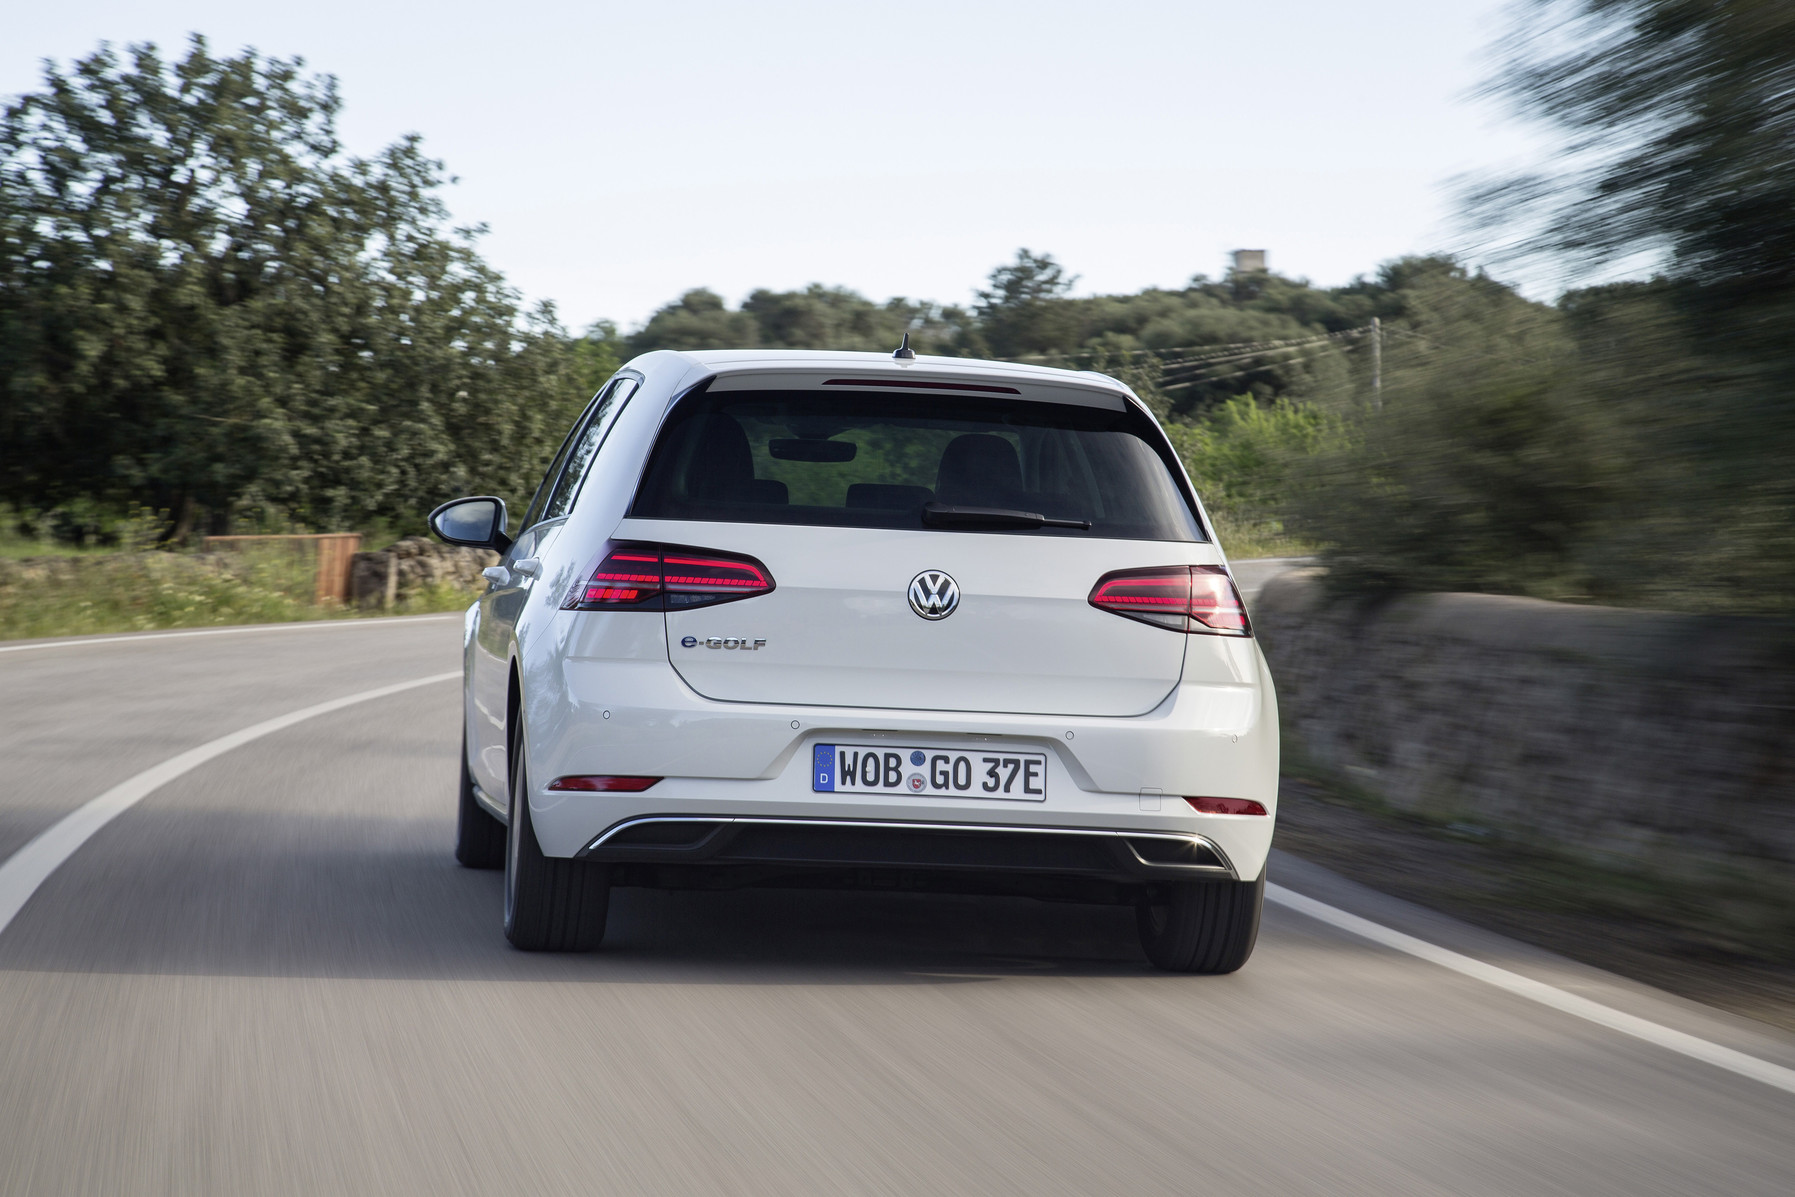 We review the Volkswagen e-Golf to see just how good an electrified classic hatch can be